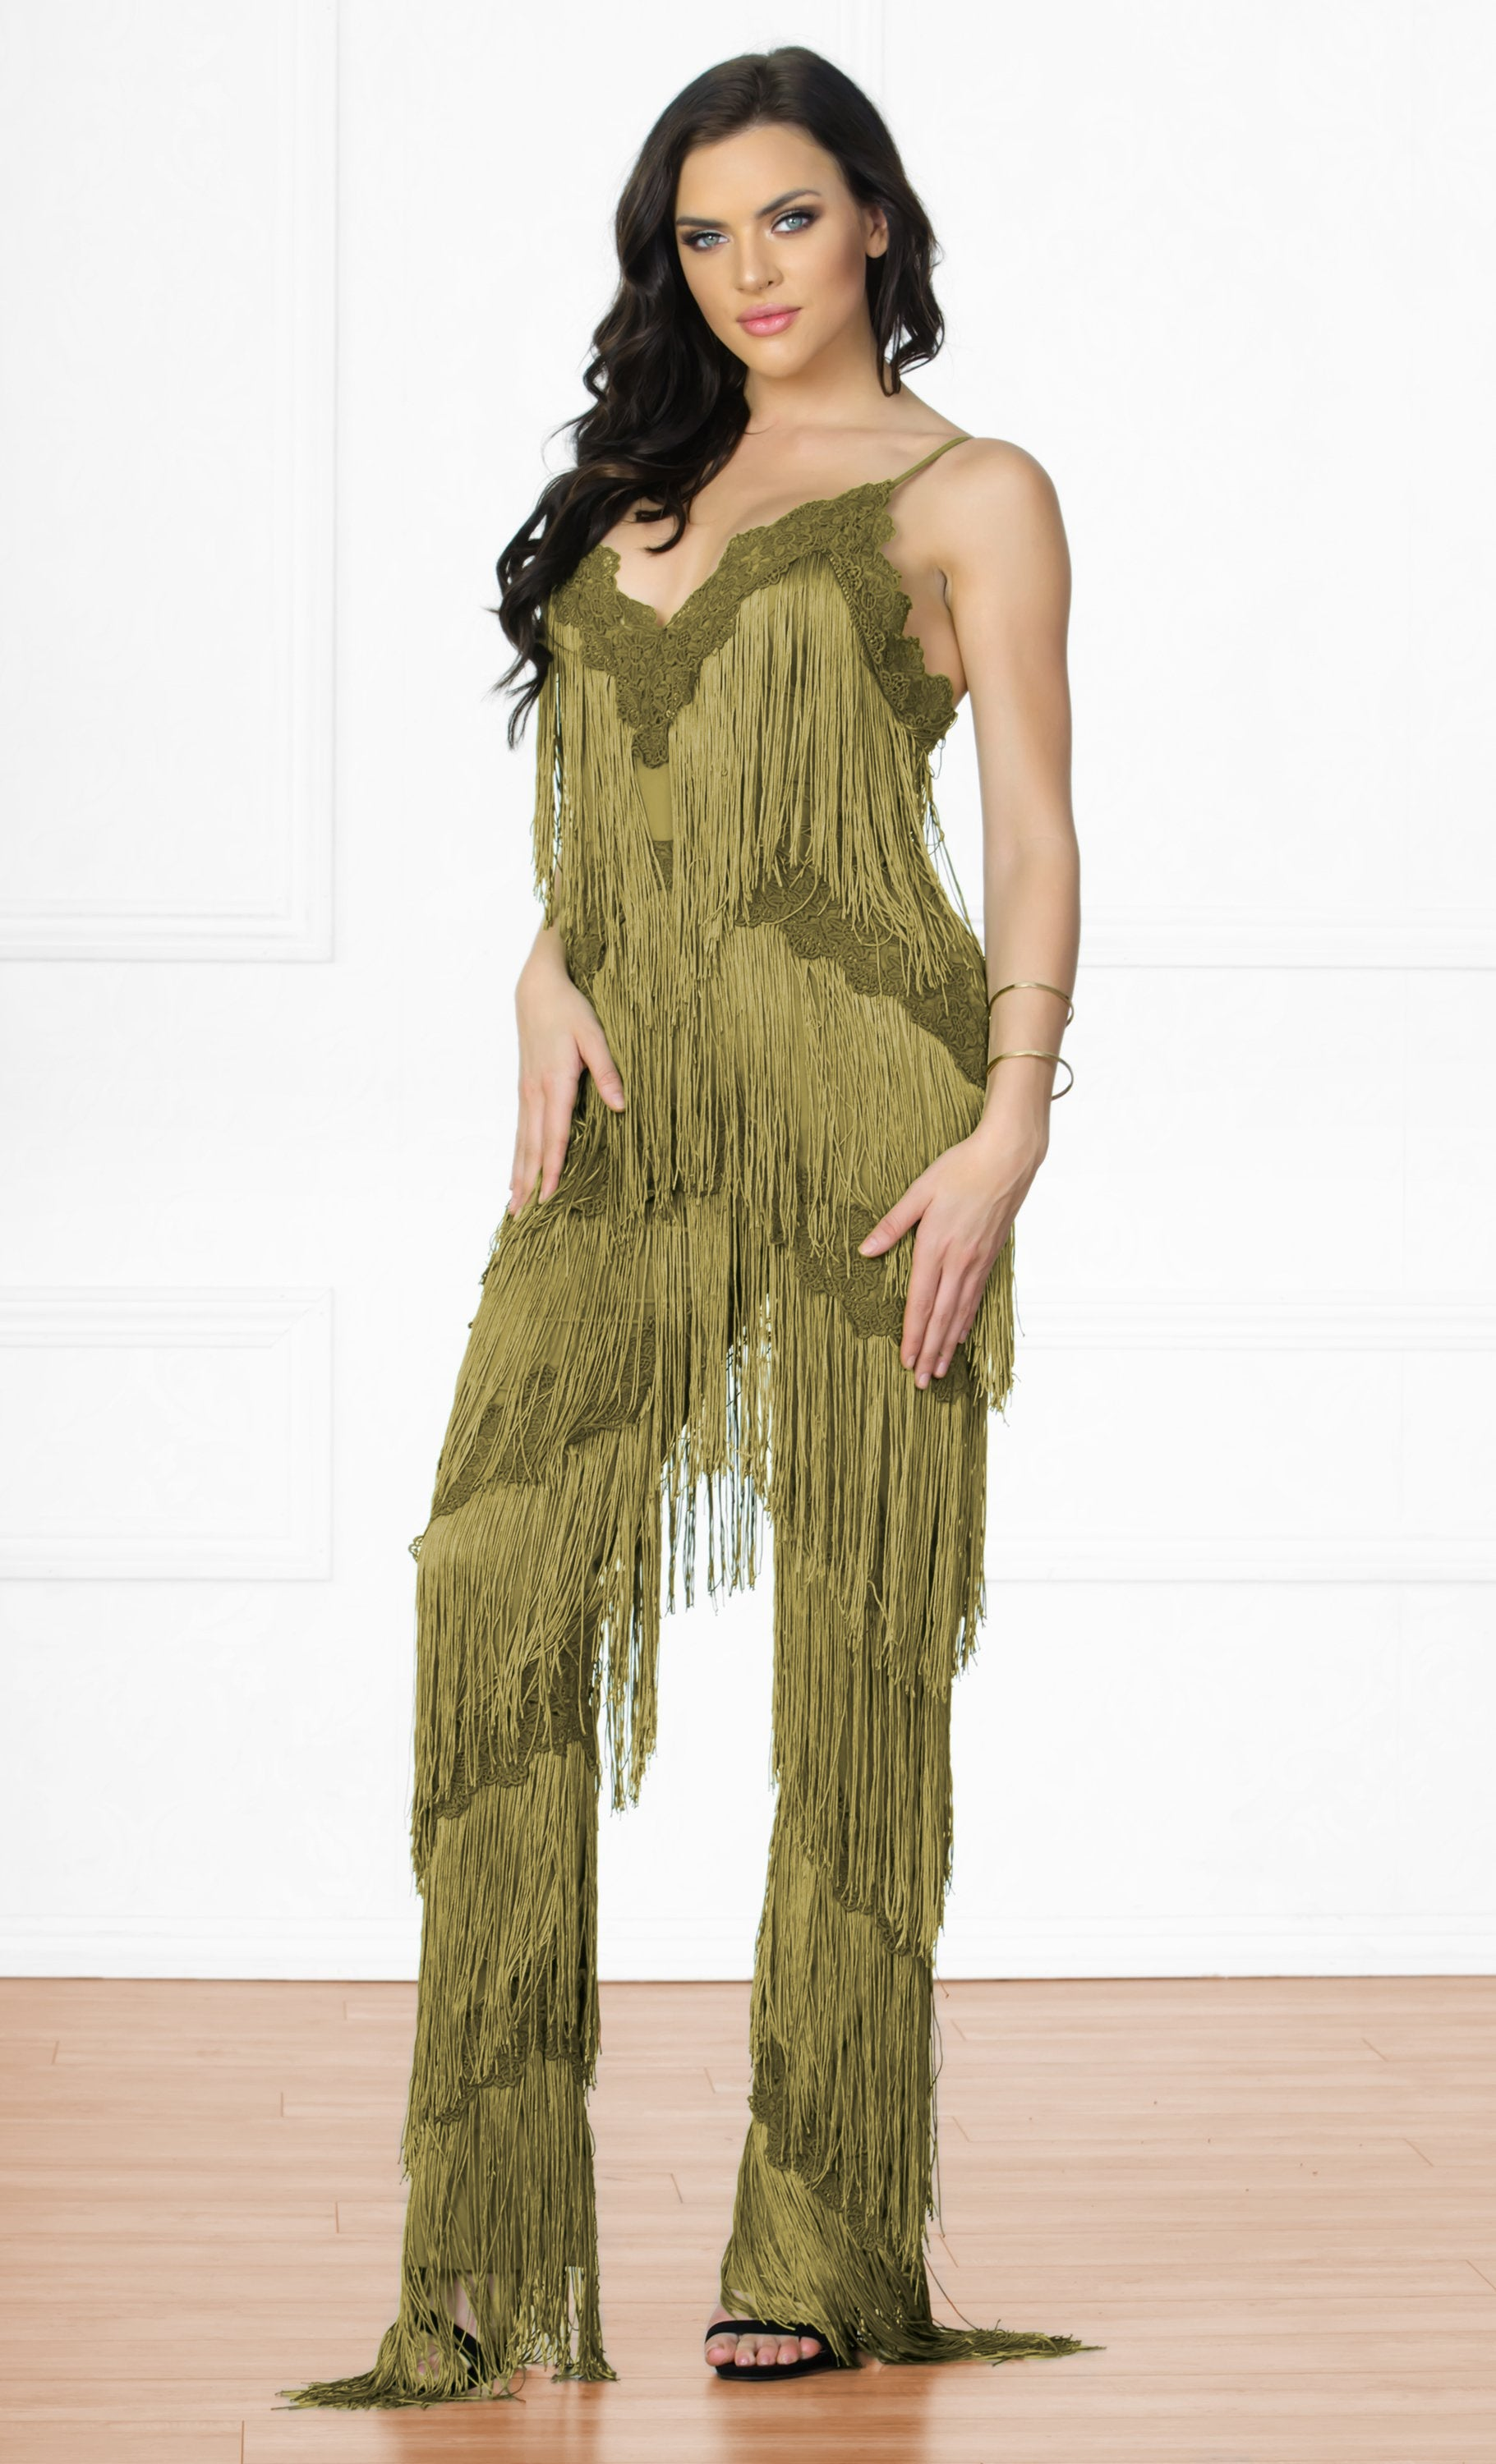 Indie XO Tinsel Town Army Green Sleeveless Spaghetti Strap Plunge V Neck  Fringe Tiered Jumpsuit - 1a2803c24